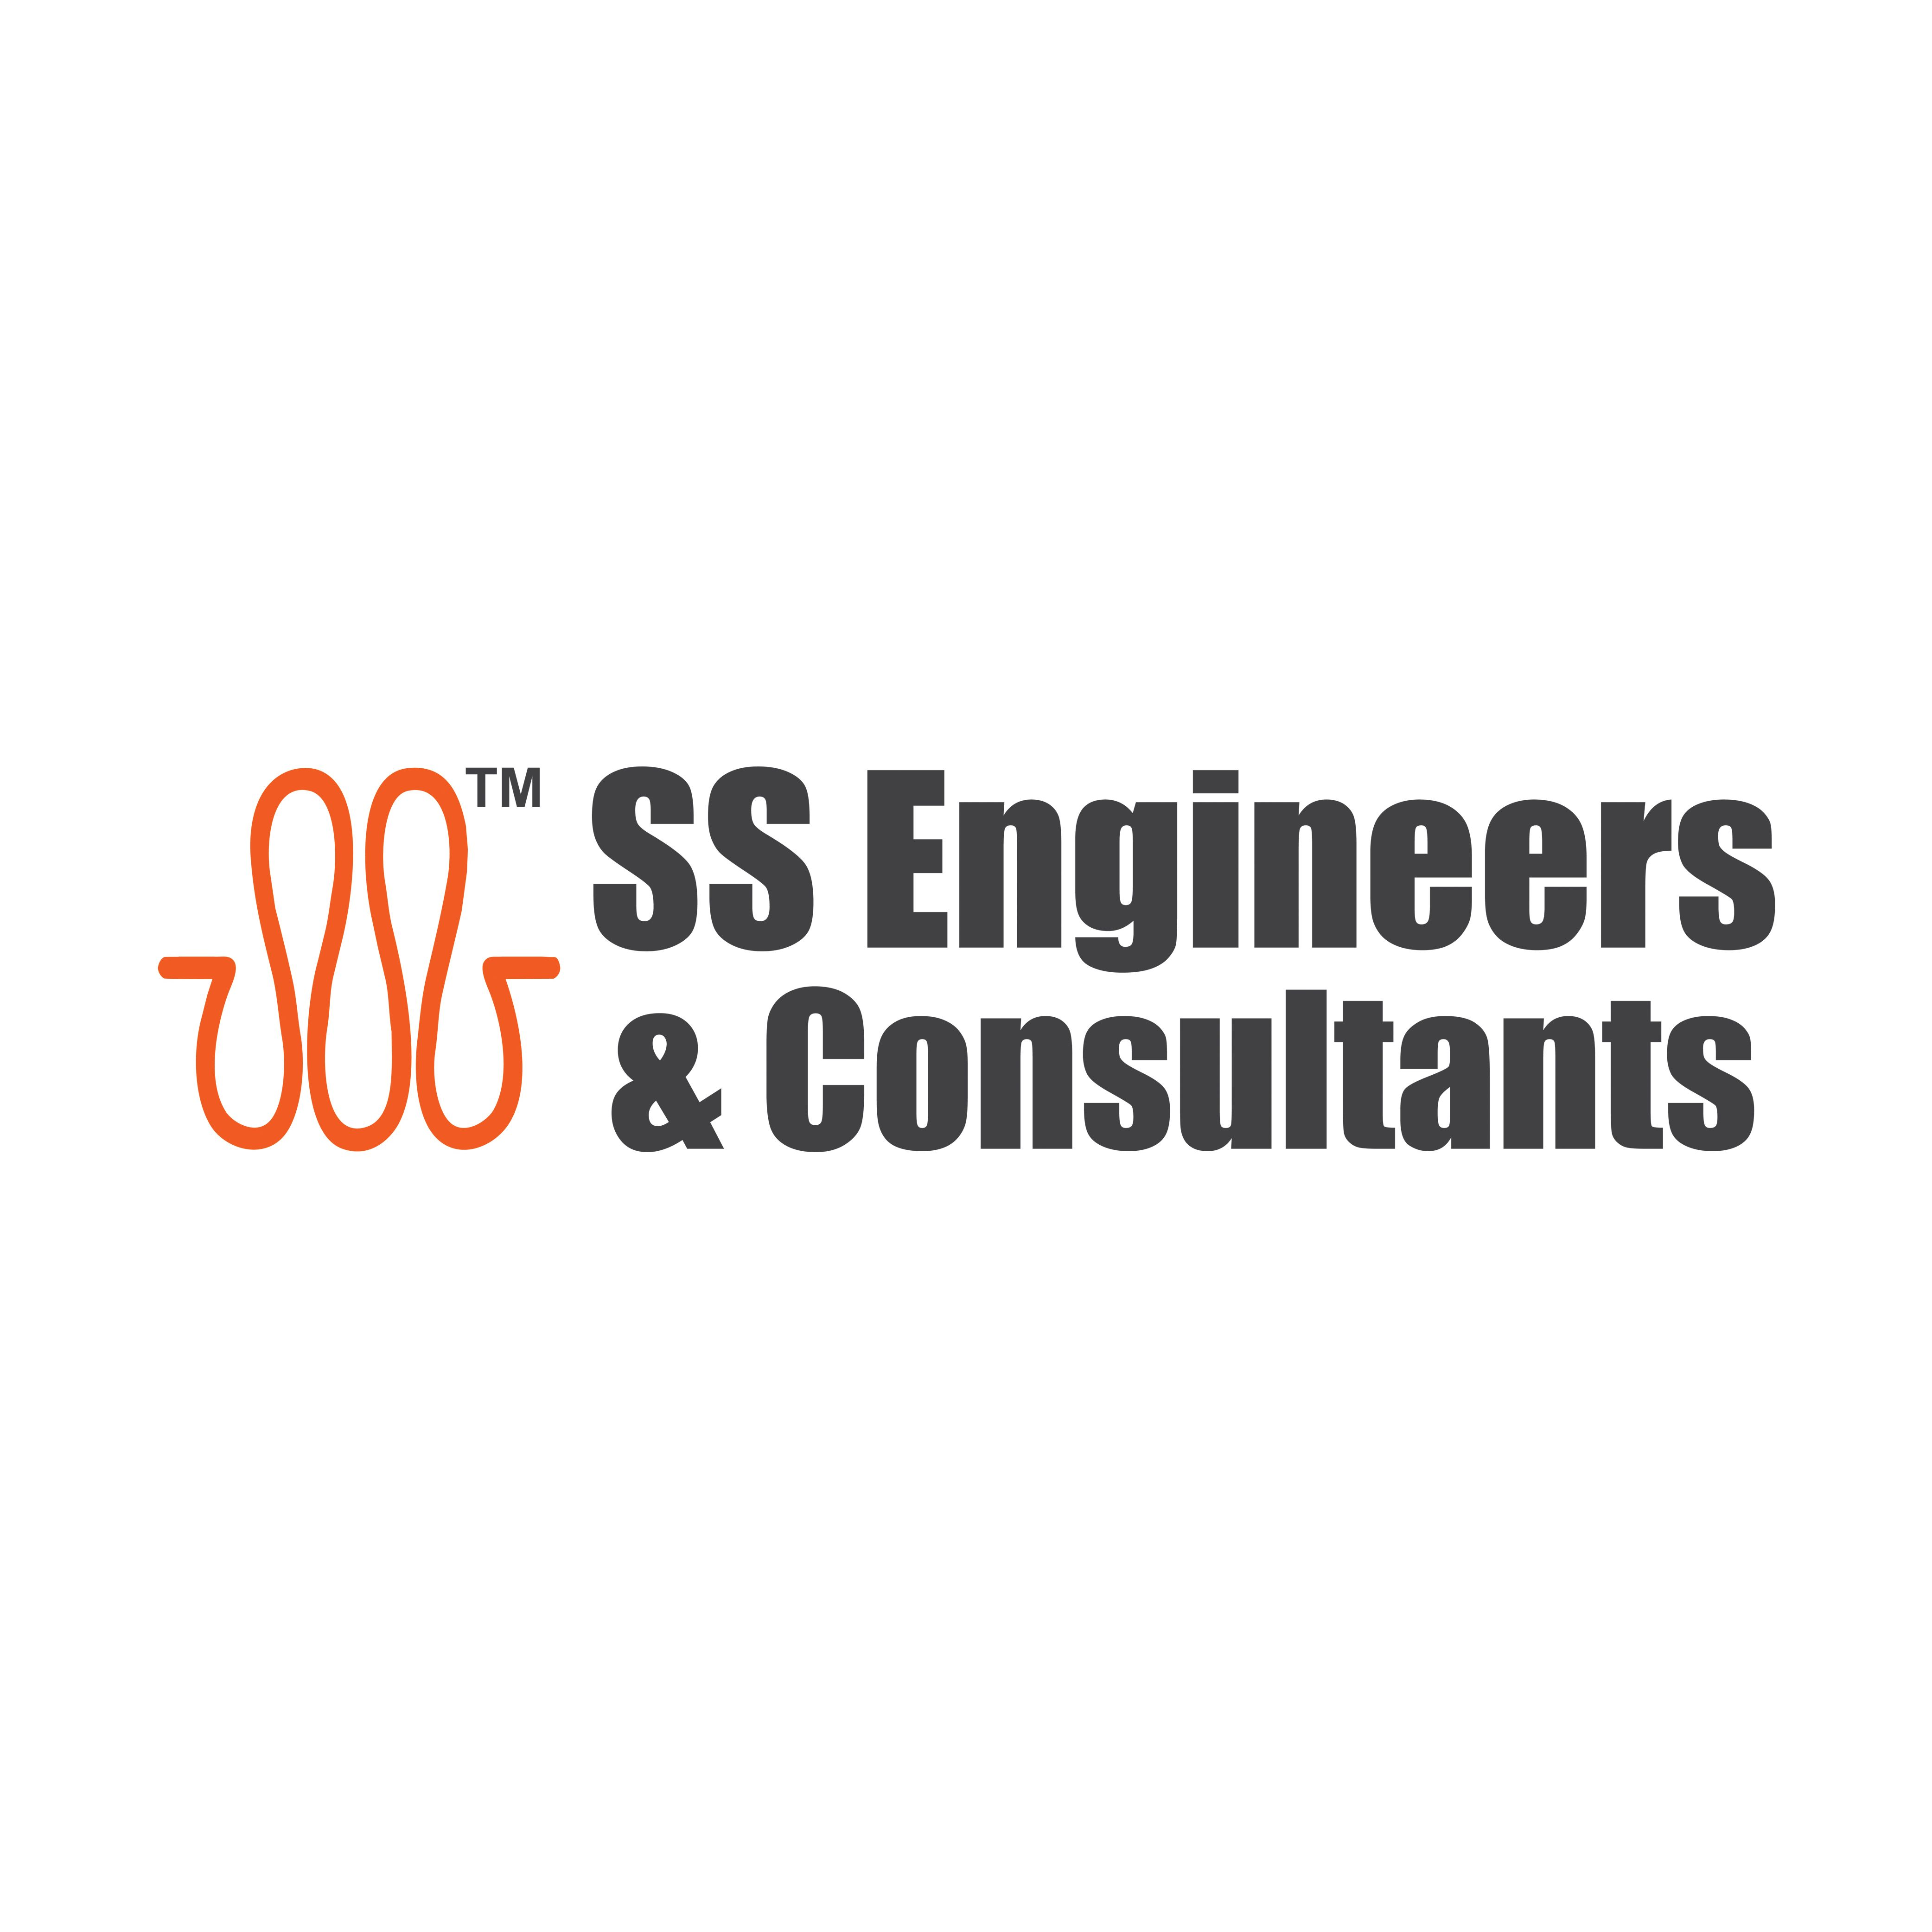 SS Engineers & Consultants